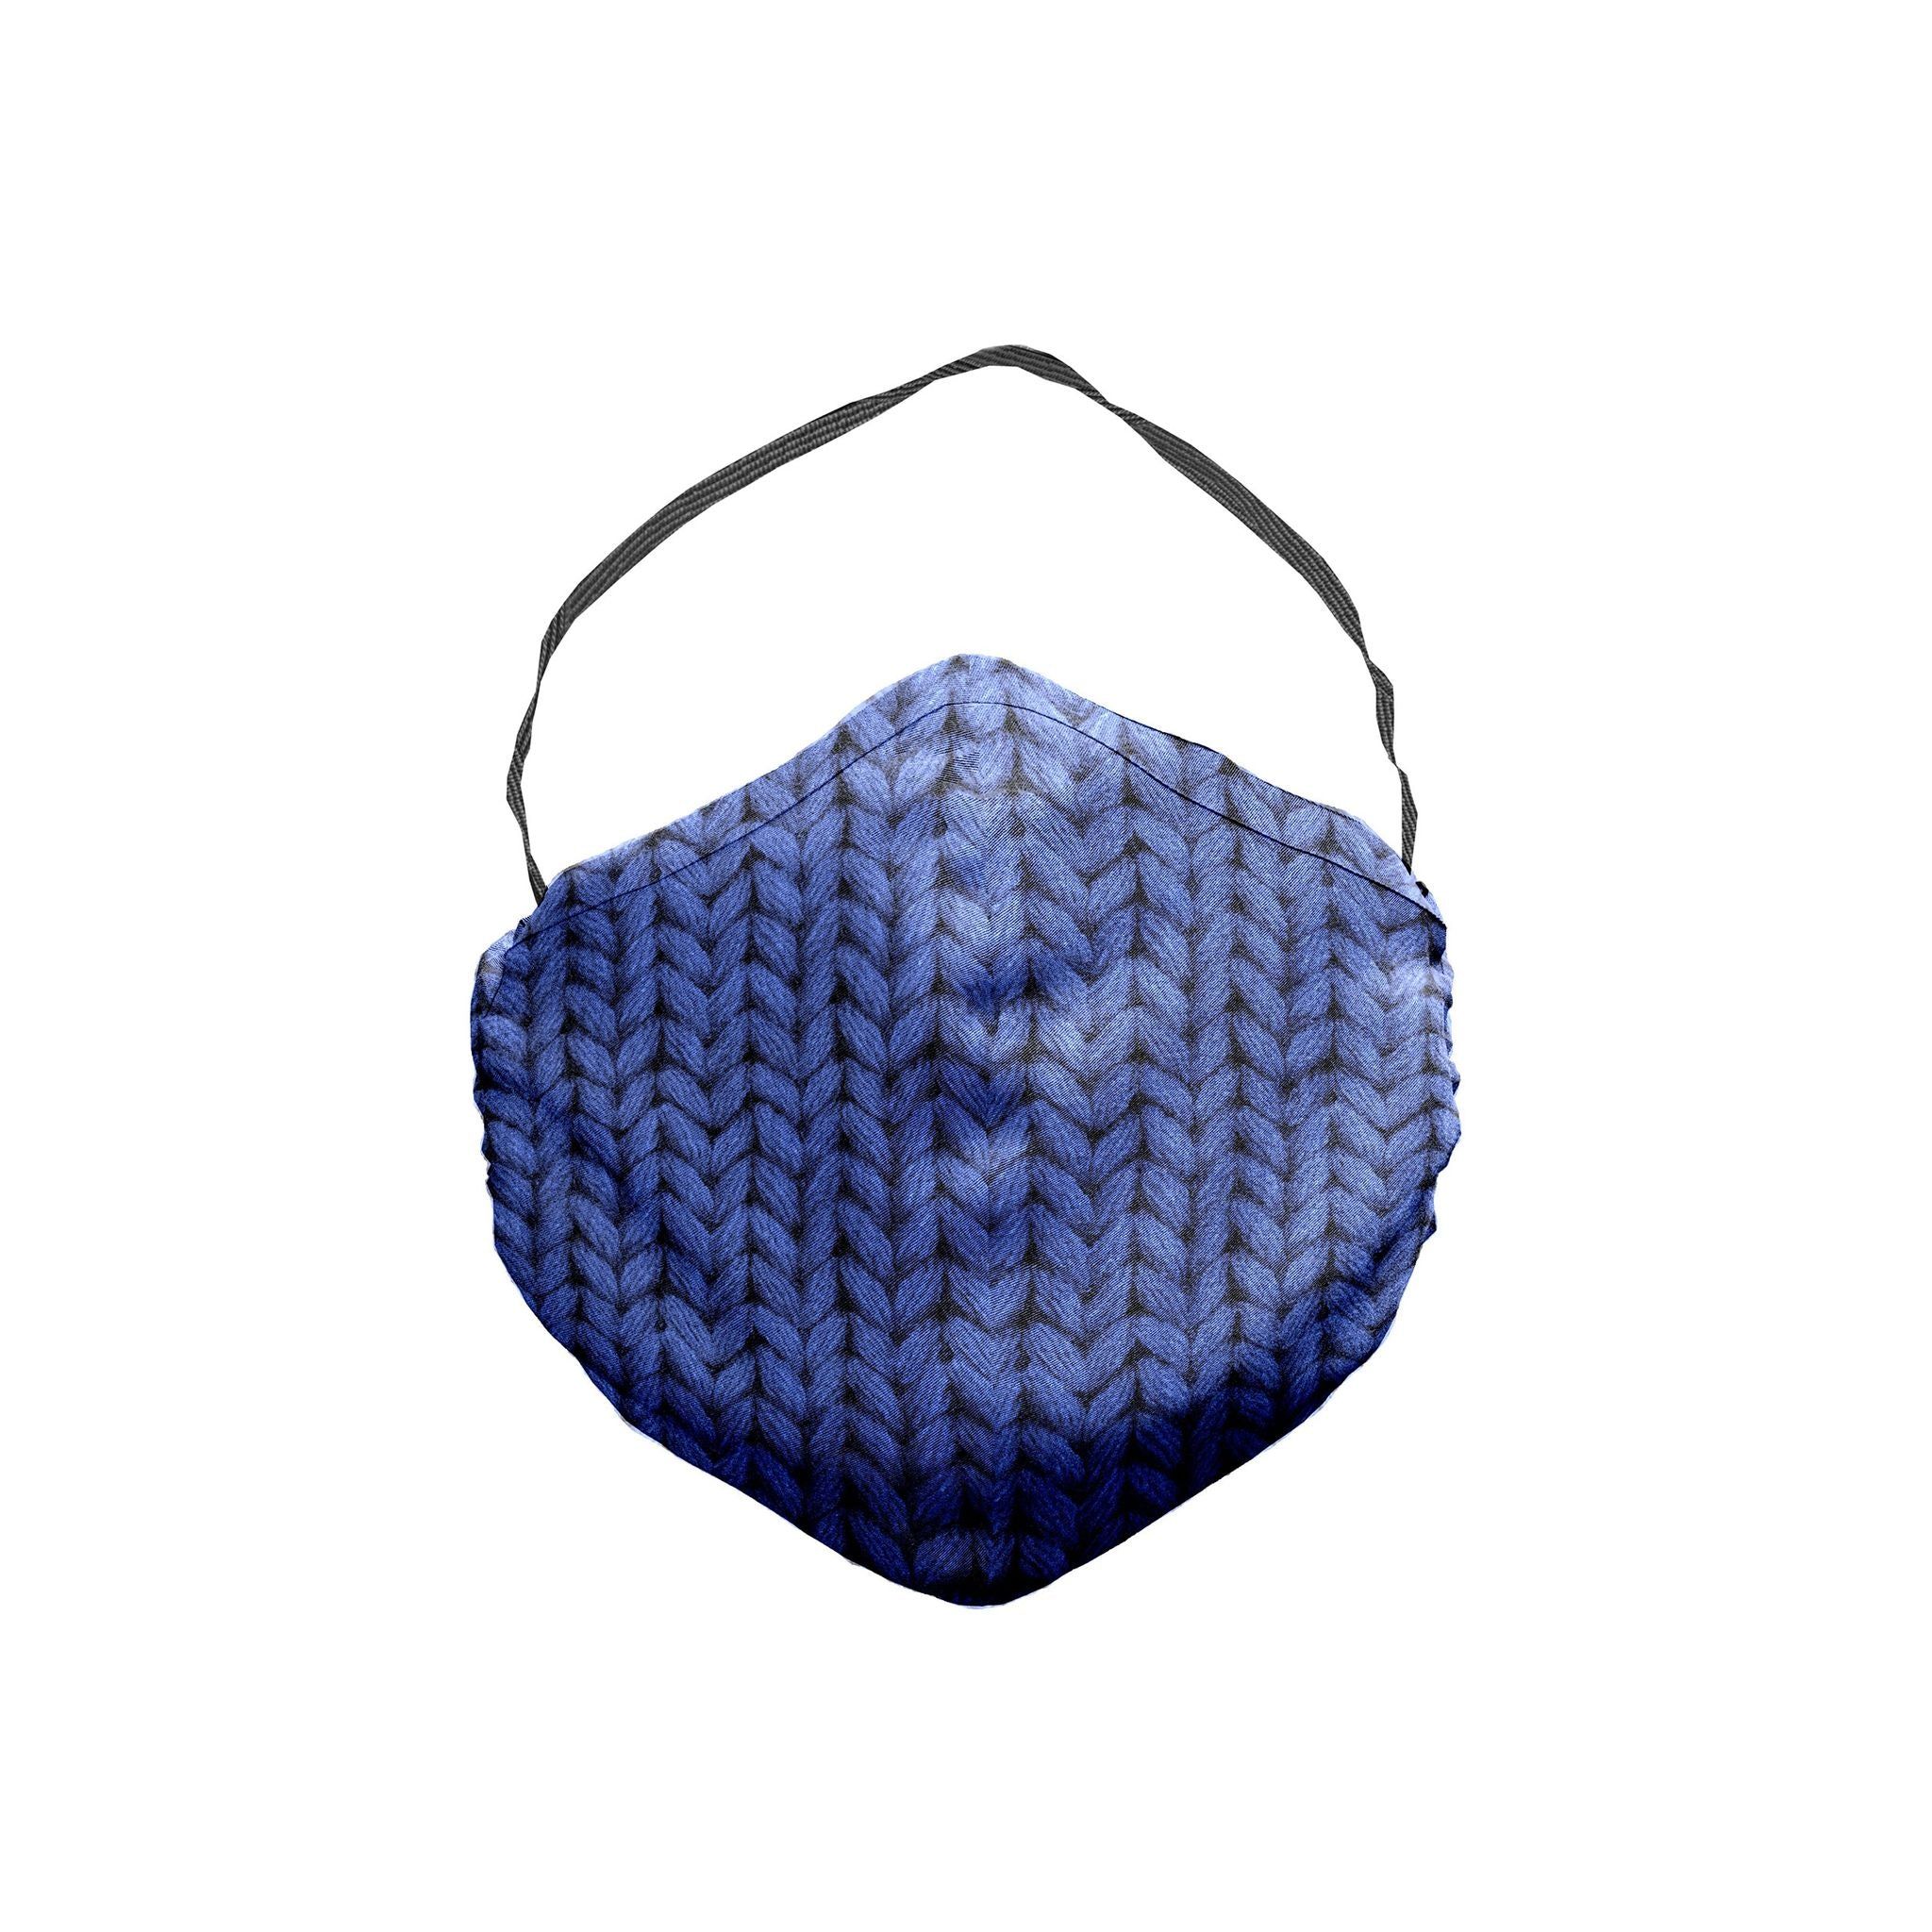 The Gonzo Knit Face Mask 5 Pack